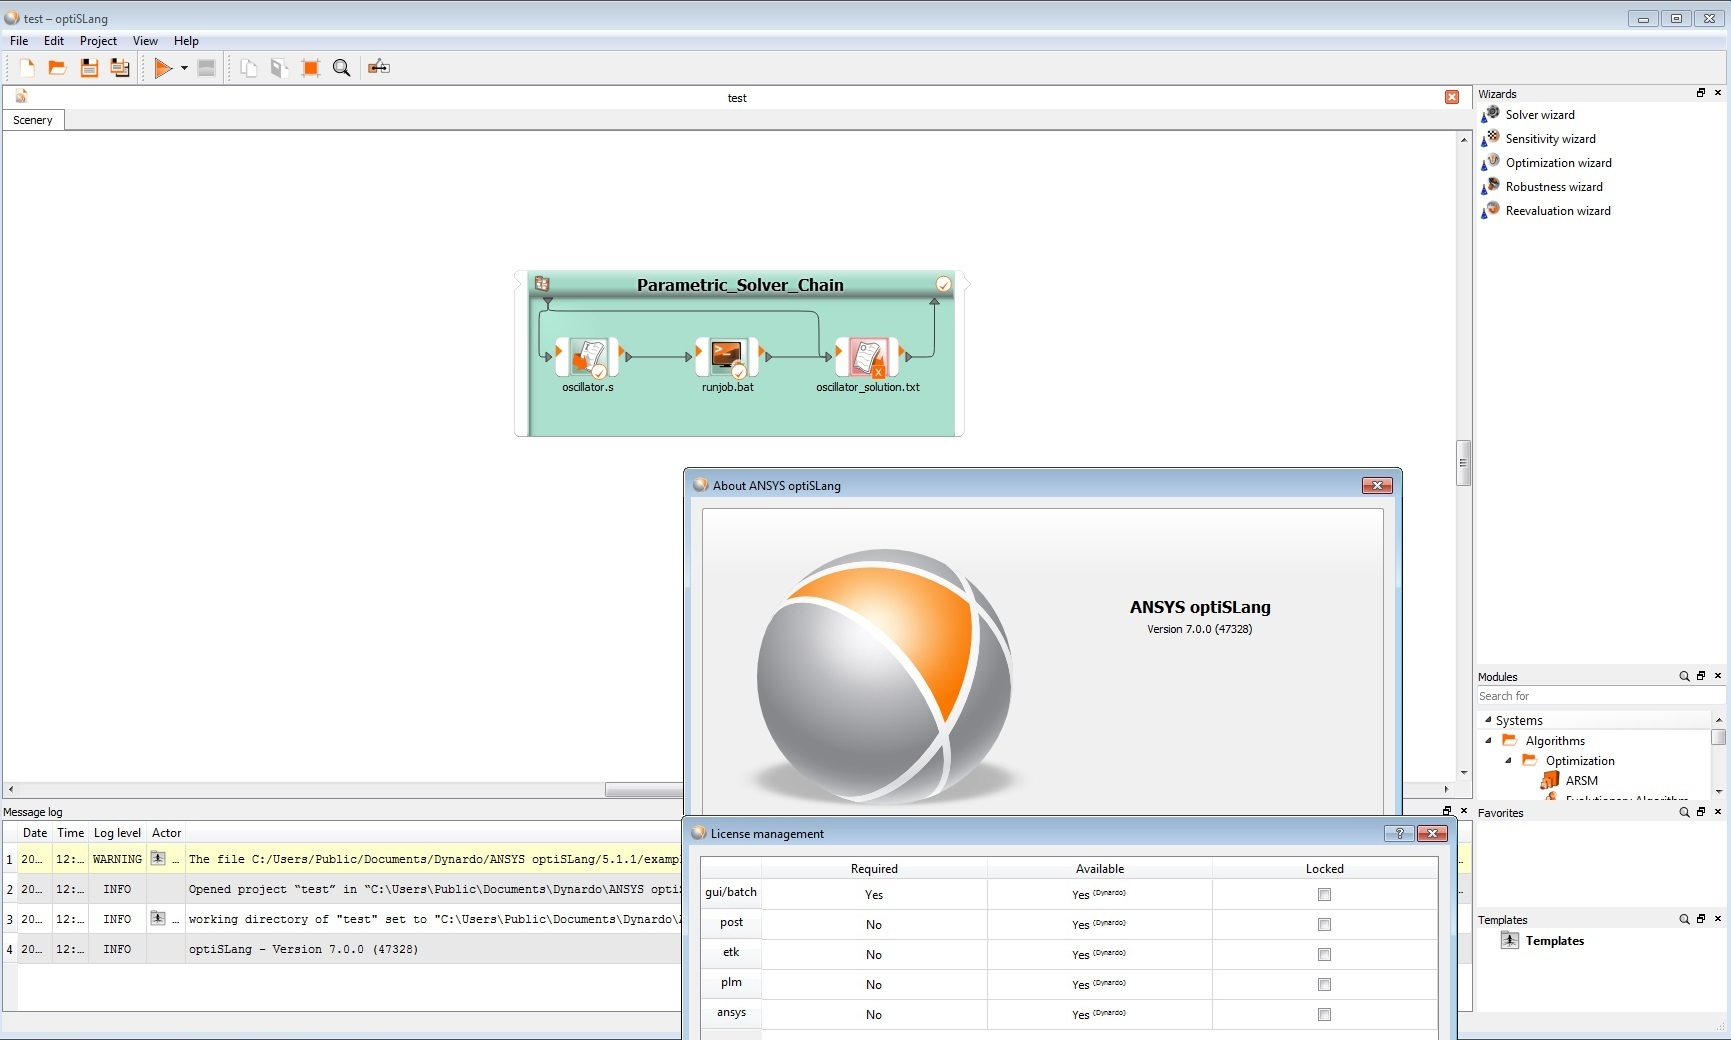 Working with ANSYS optiSLang 7.0.0.47328 full license